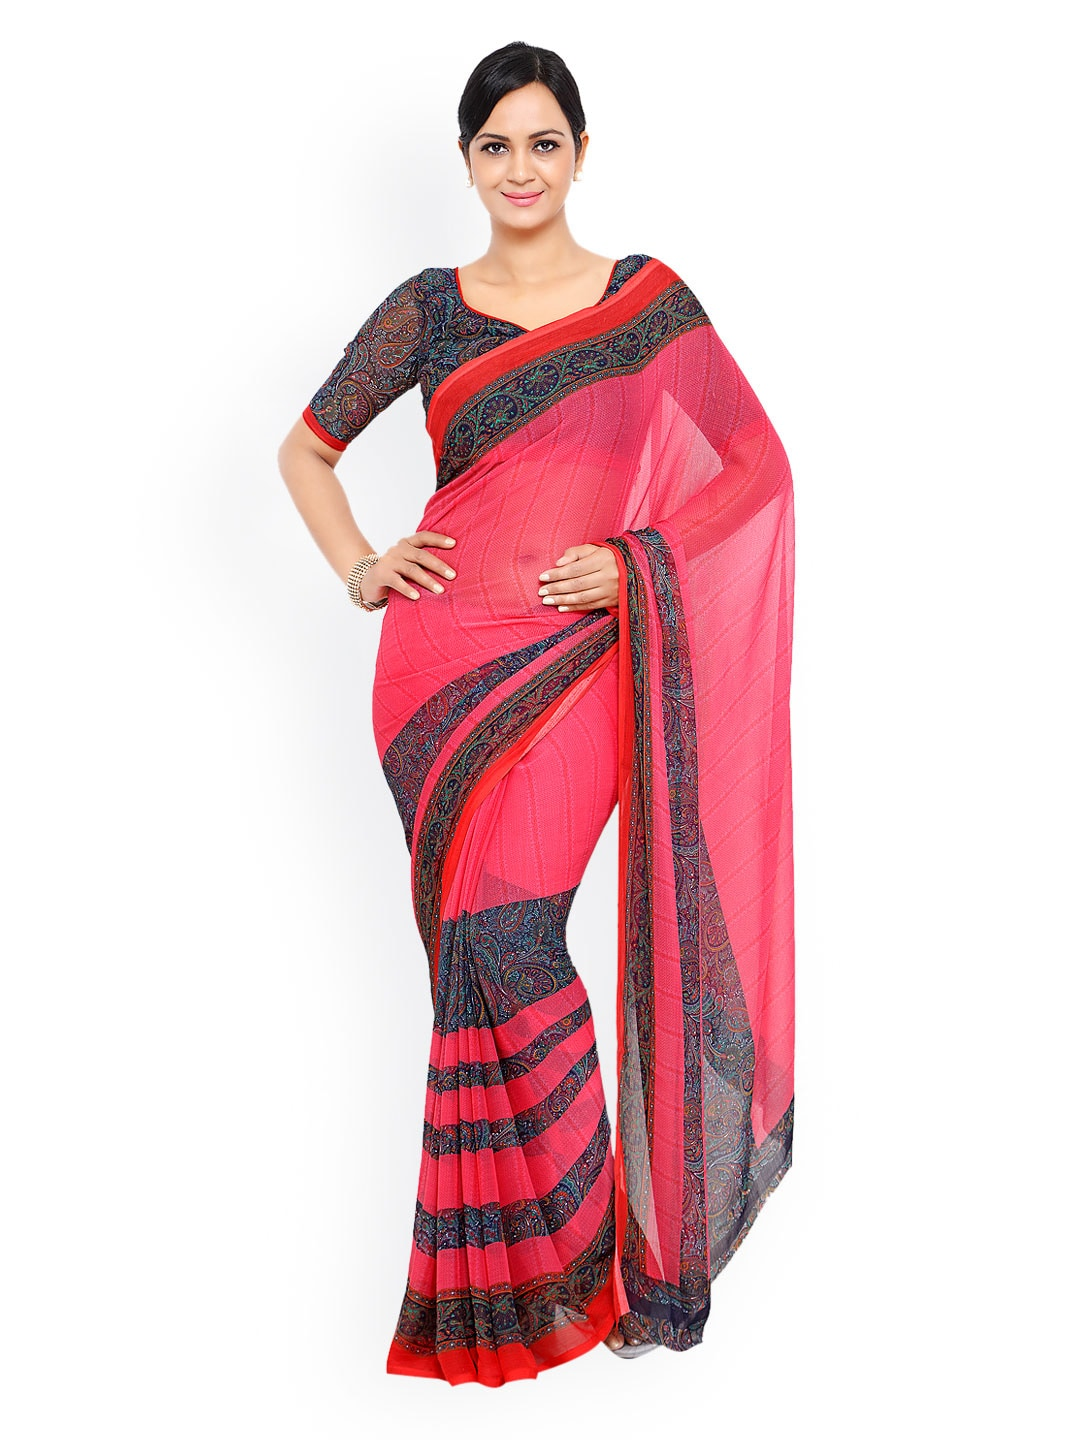 9761e4799 Vaamsi Daily Sarees - Buy Vaamsi Daily Sarees online in India